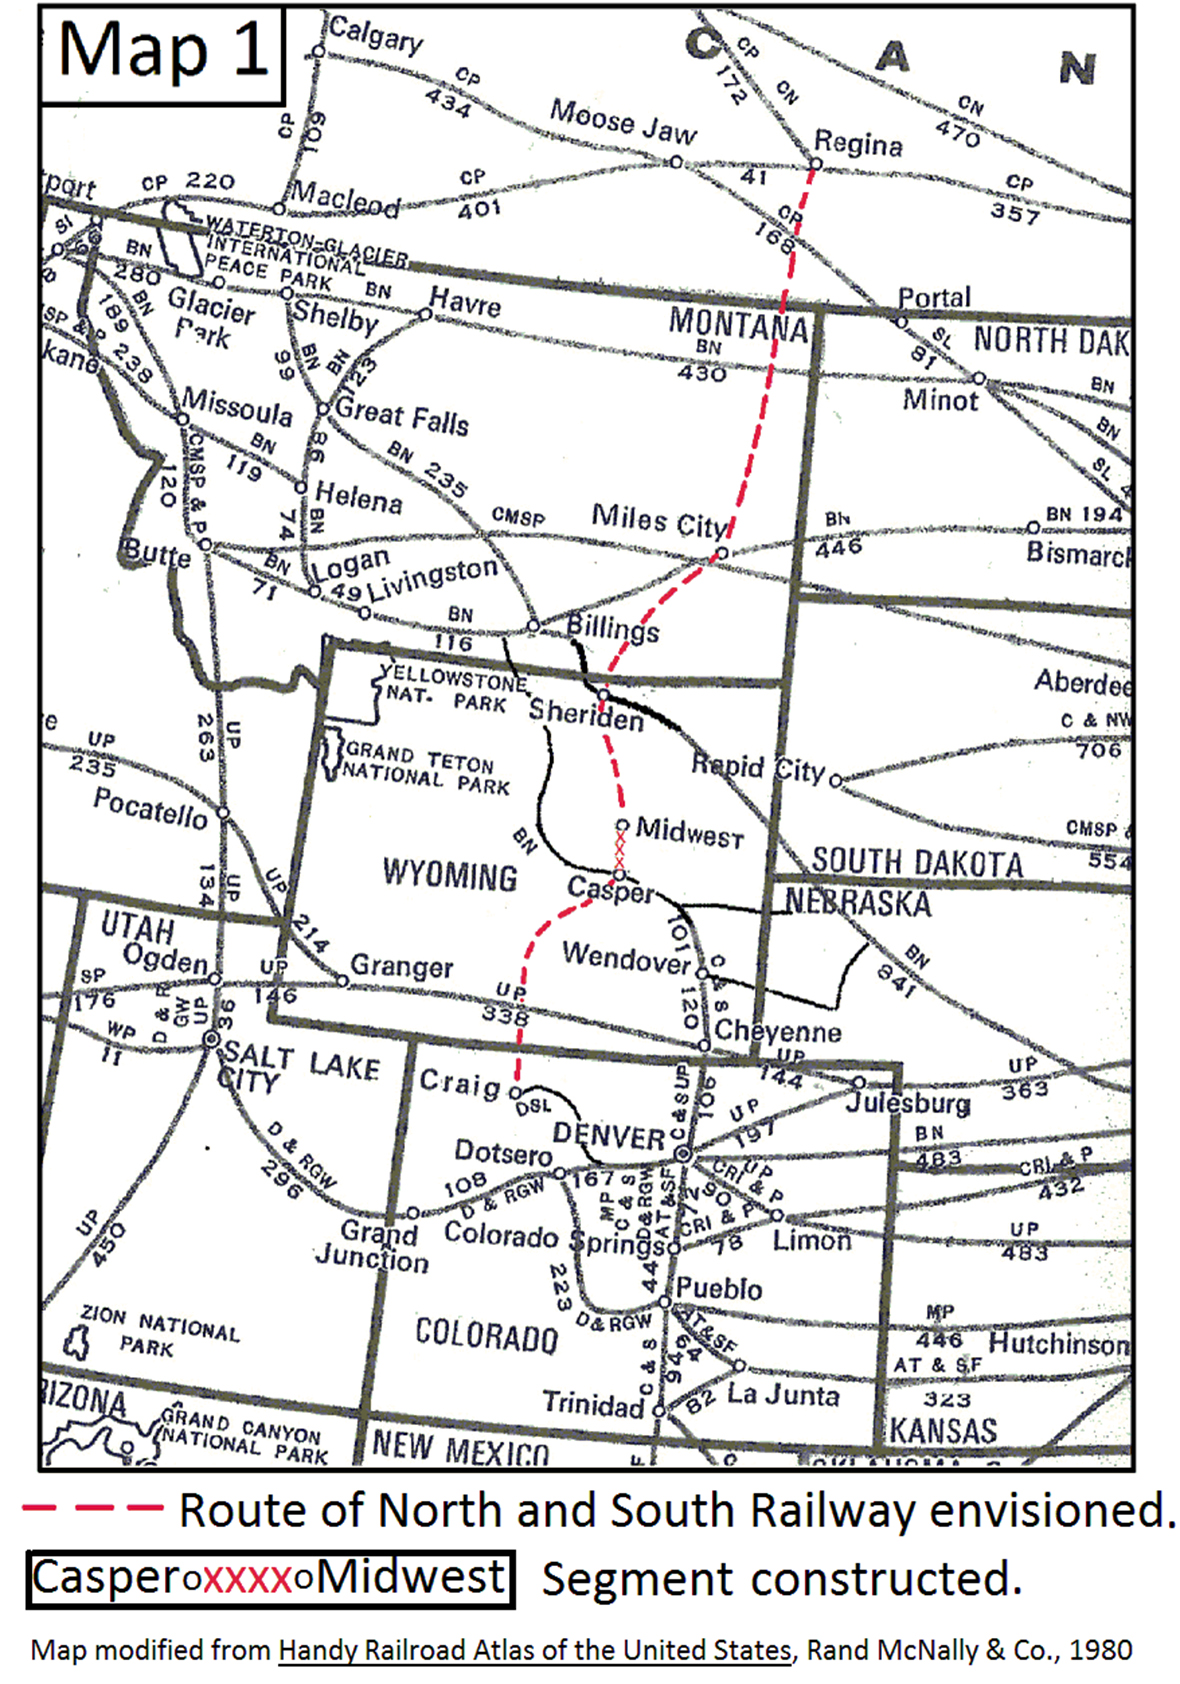 The Wyoming North and South Railroad, 1923-1935